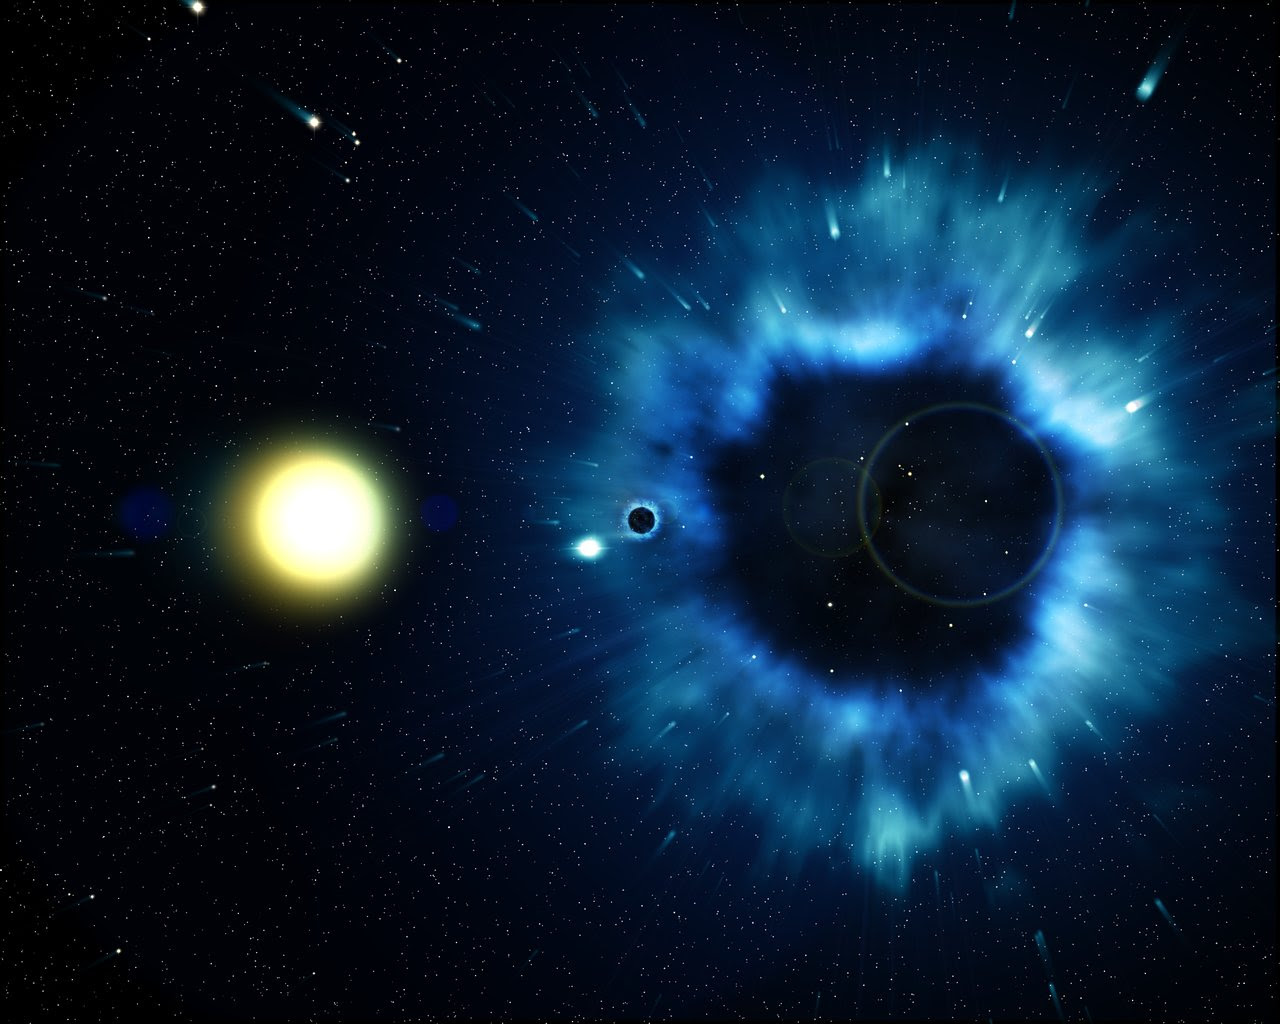 Missing Link Found Between Supernovae And Black Holes Esa Hubble